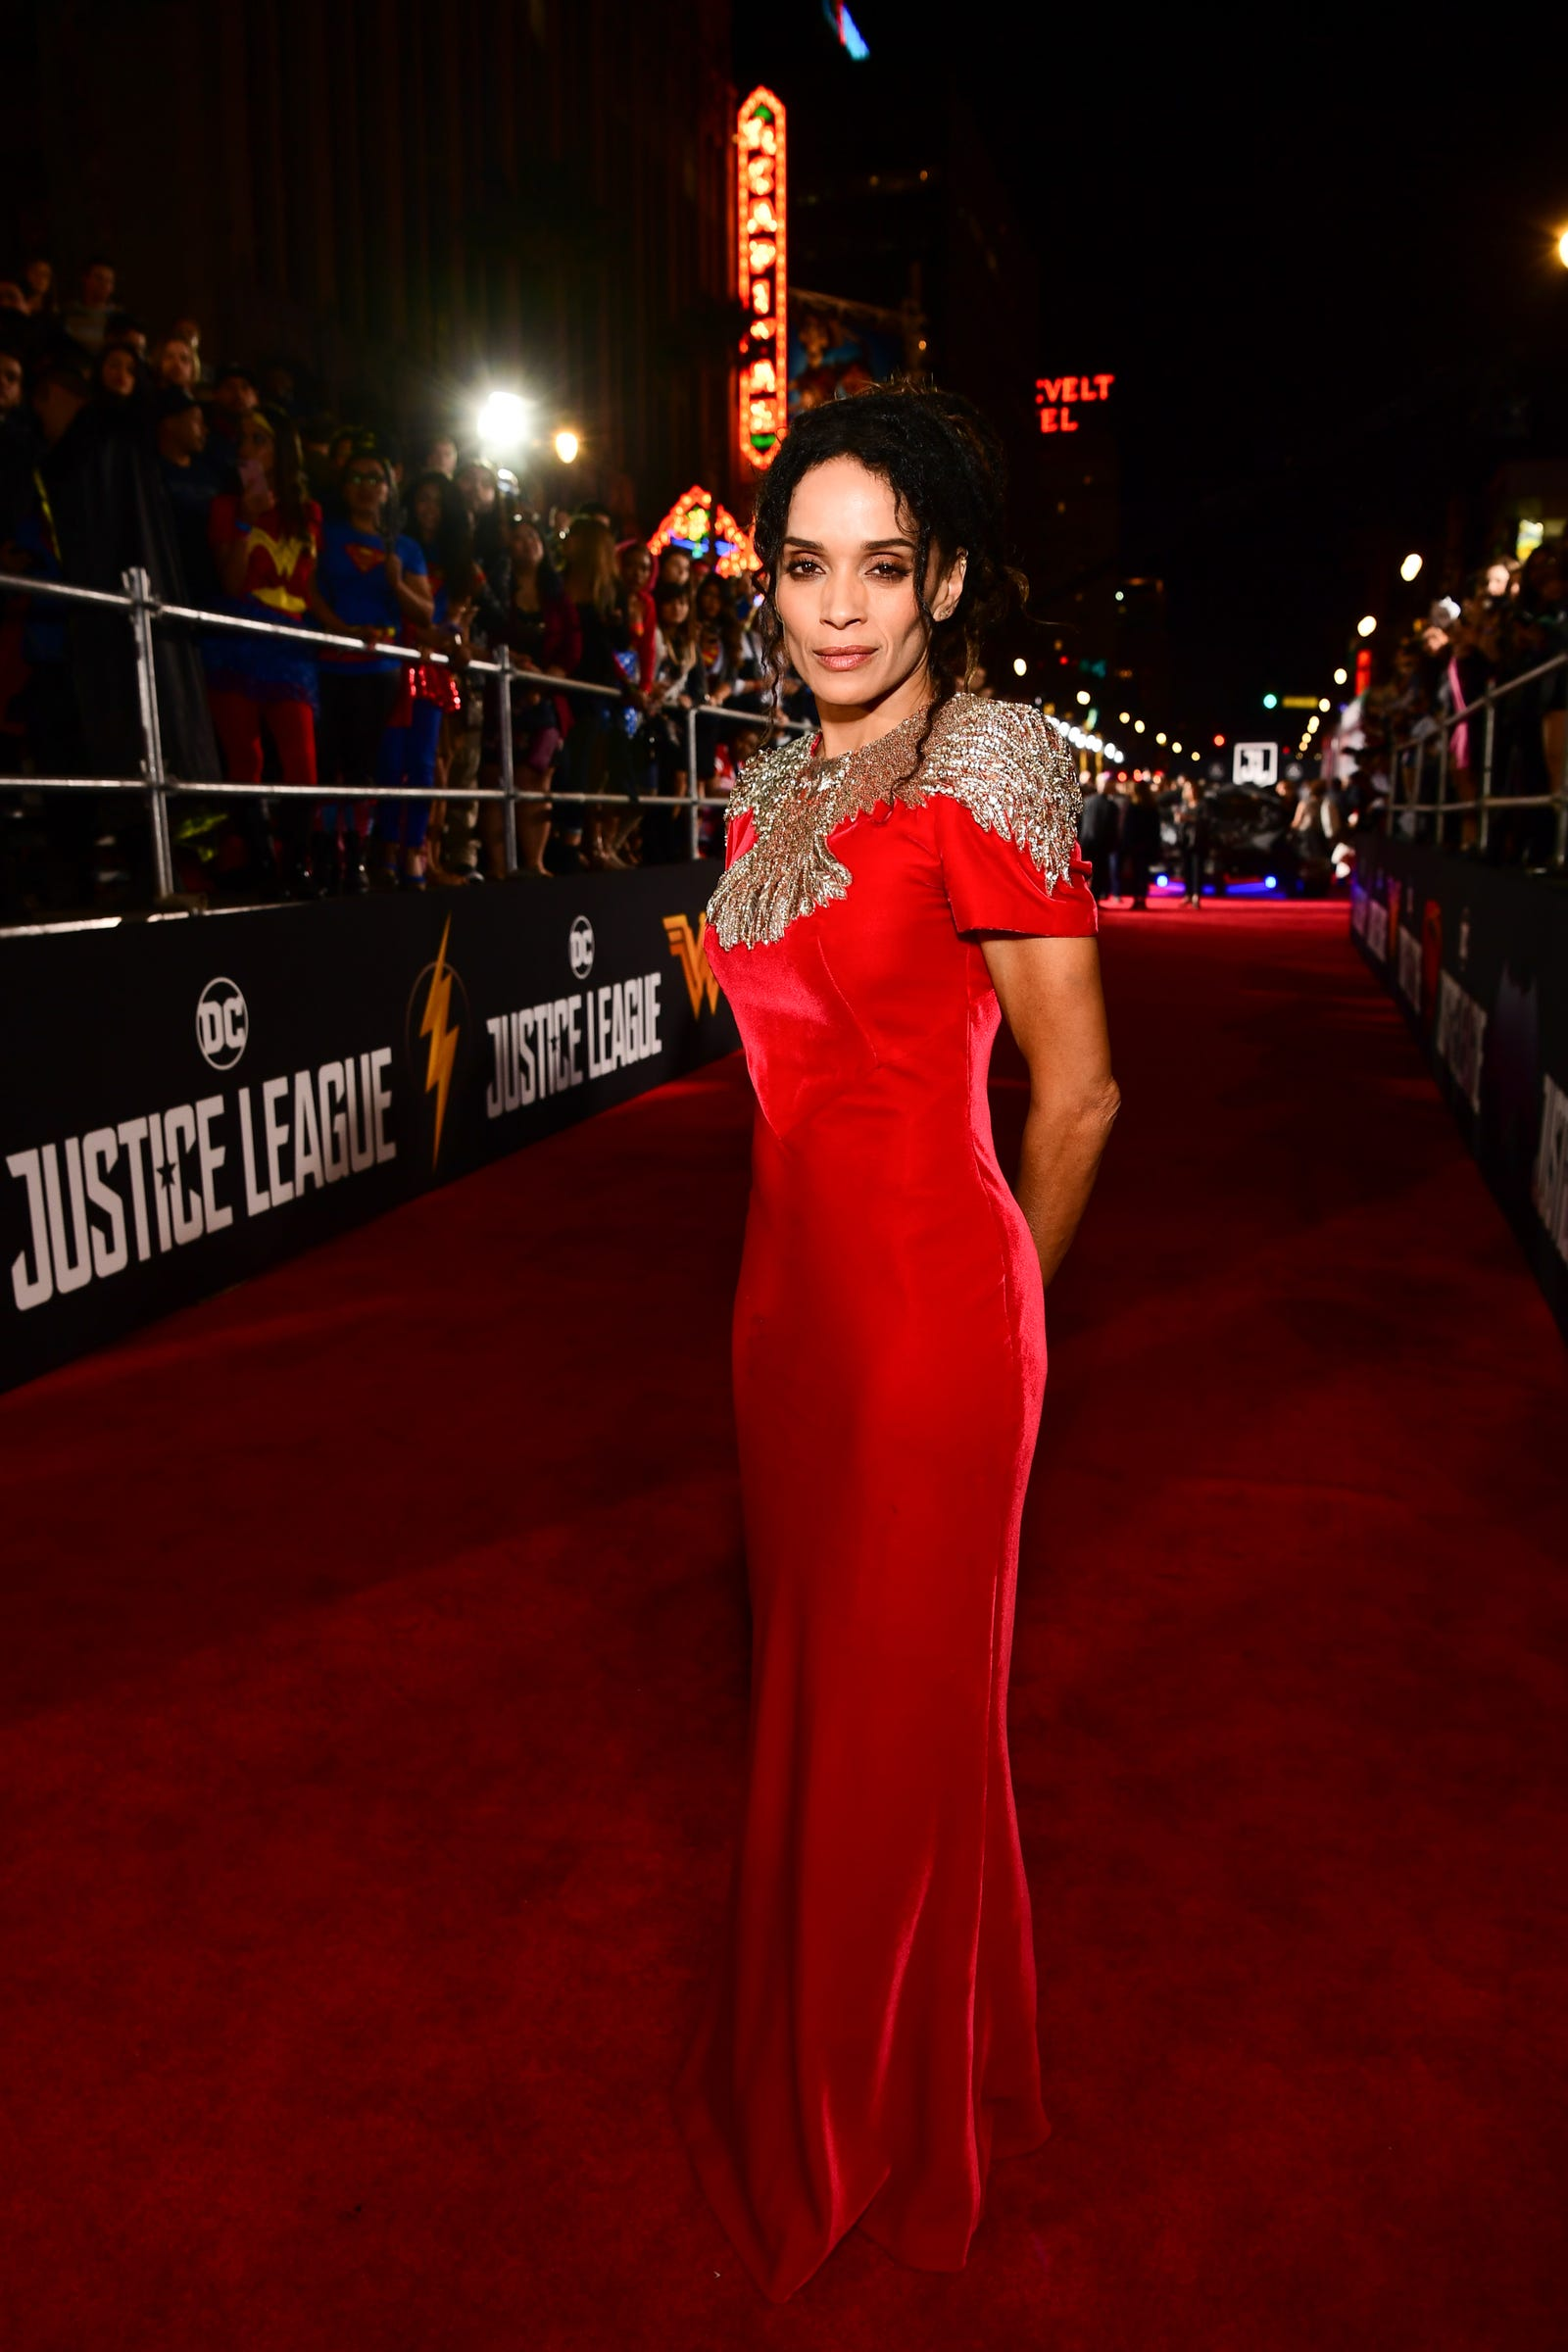 Lisa Bonet: Never forget that if Zoë Kravitz is a style star, she gets it from her mama. Lisa Bonet has been a fashion icon since playing Denise Huxtable over 30 years ago—and is still stunning.  (Lisa Bonet attends the premiere of Warner Bros. Pictures' 'Justice League' at Dolby Theatre on November 13, 2017 in Hollywood, California.)